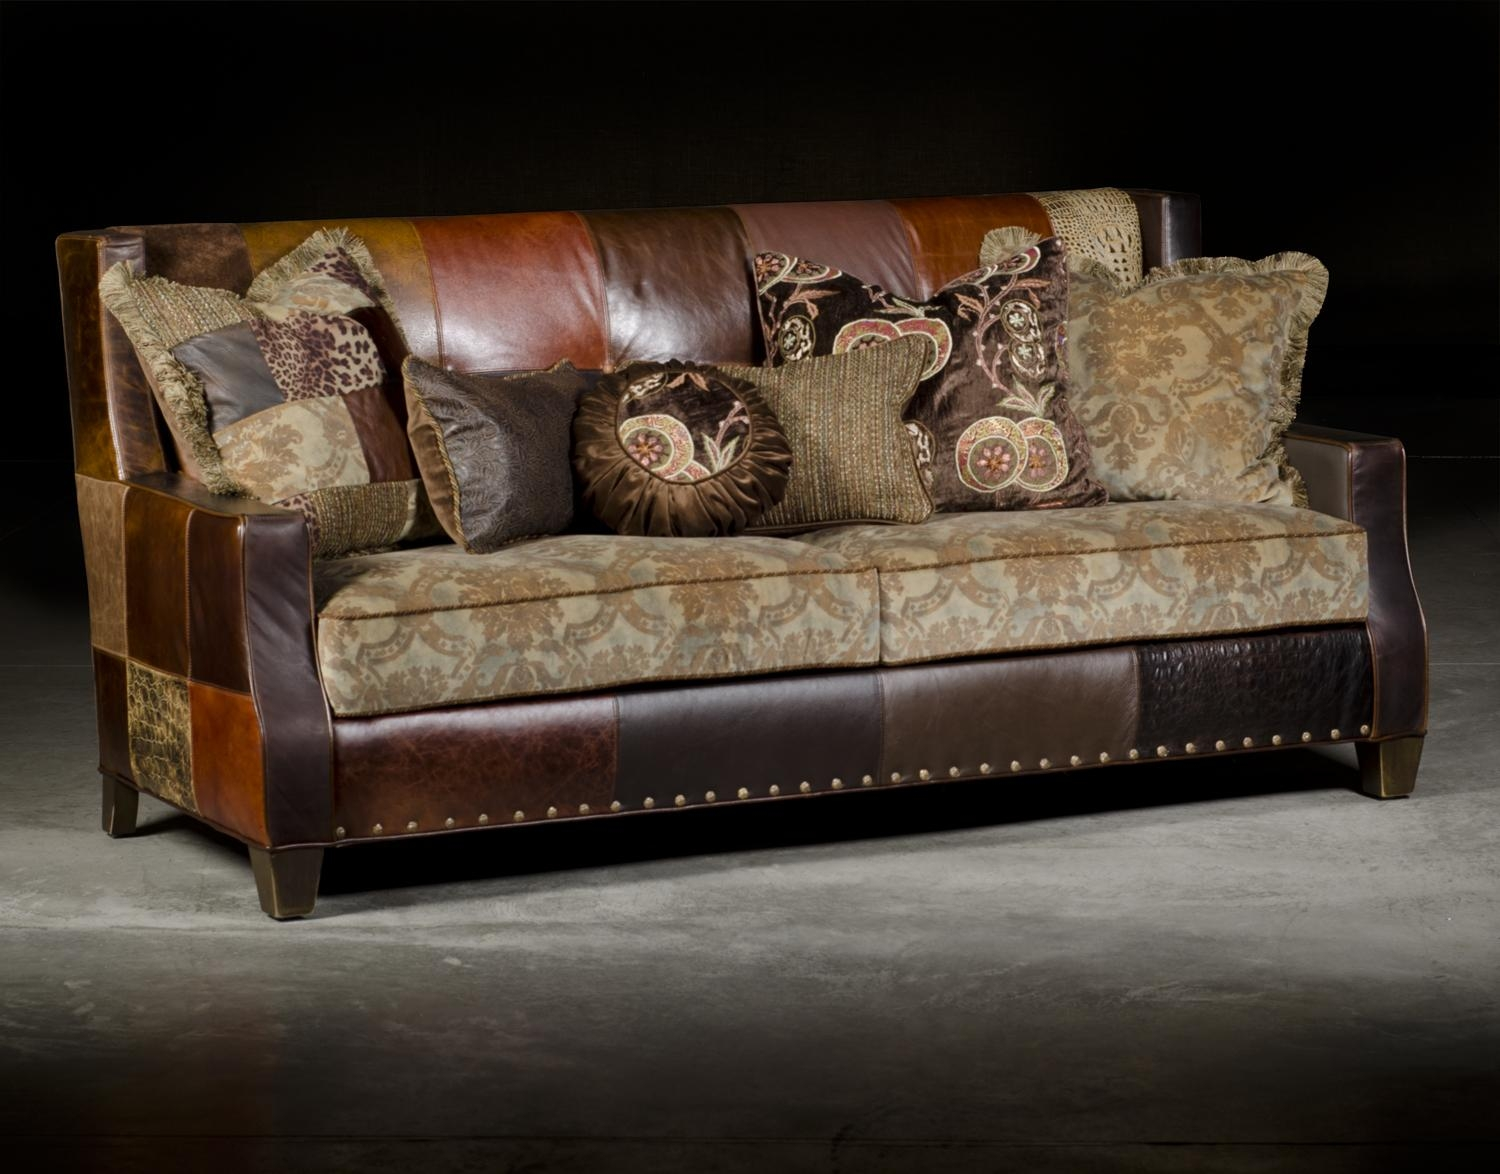 Custom Patchwork Leather & Cowhide Sofa | City Creek Furniture Inside Cowhide Sofas (Image 8 of 20)